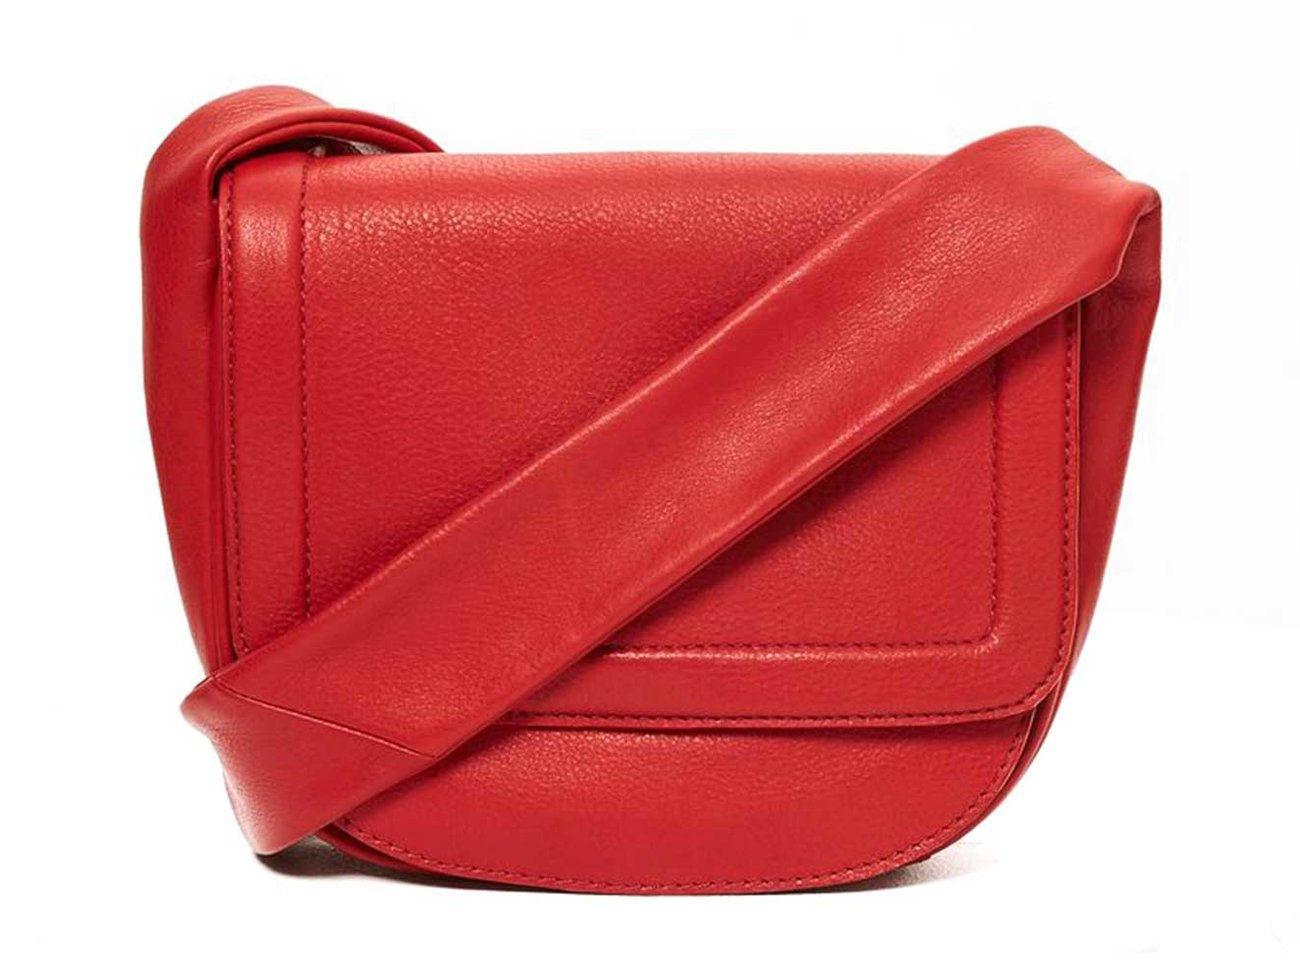 topshop-red-leather-saddle-bag-CROSSBODYBAGS0118.jpg